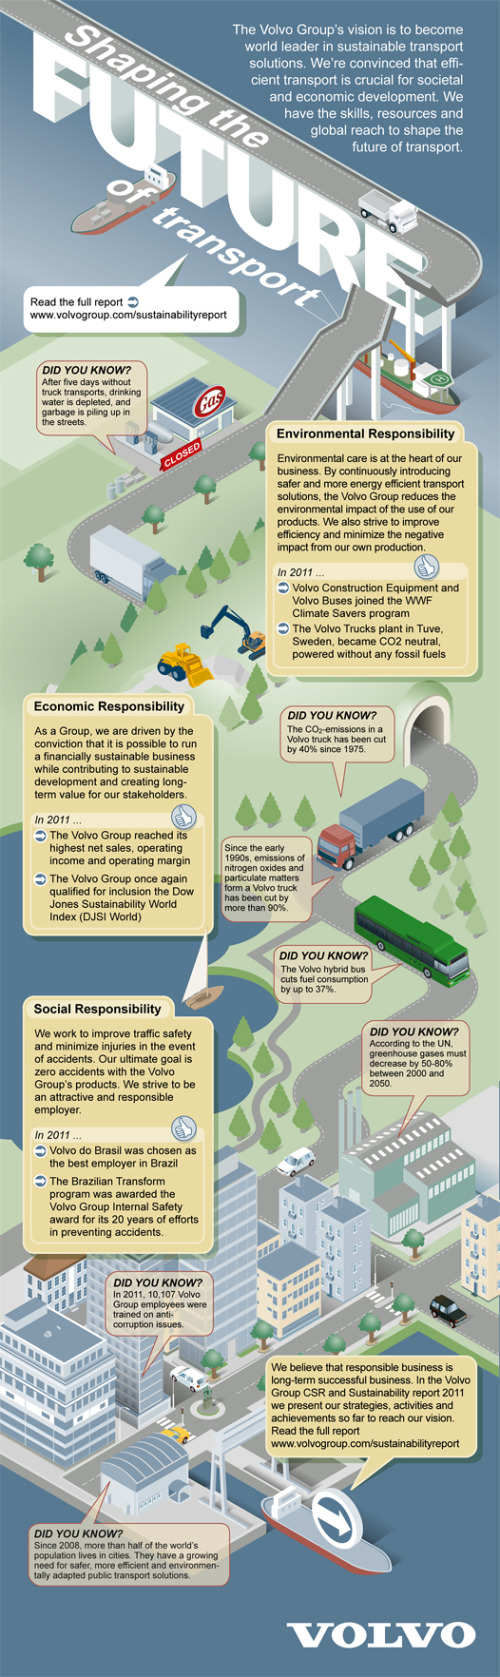 CSR and Sustainability Report: Volvo Shaping the Future of Transport infographic